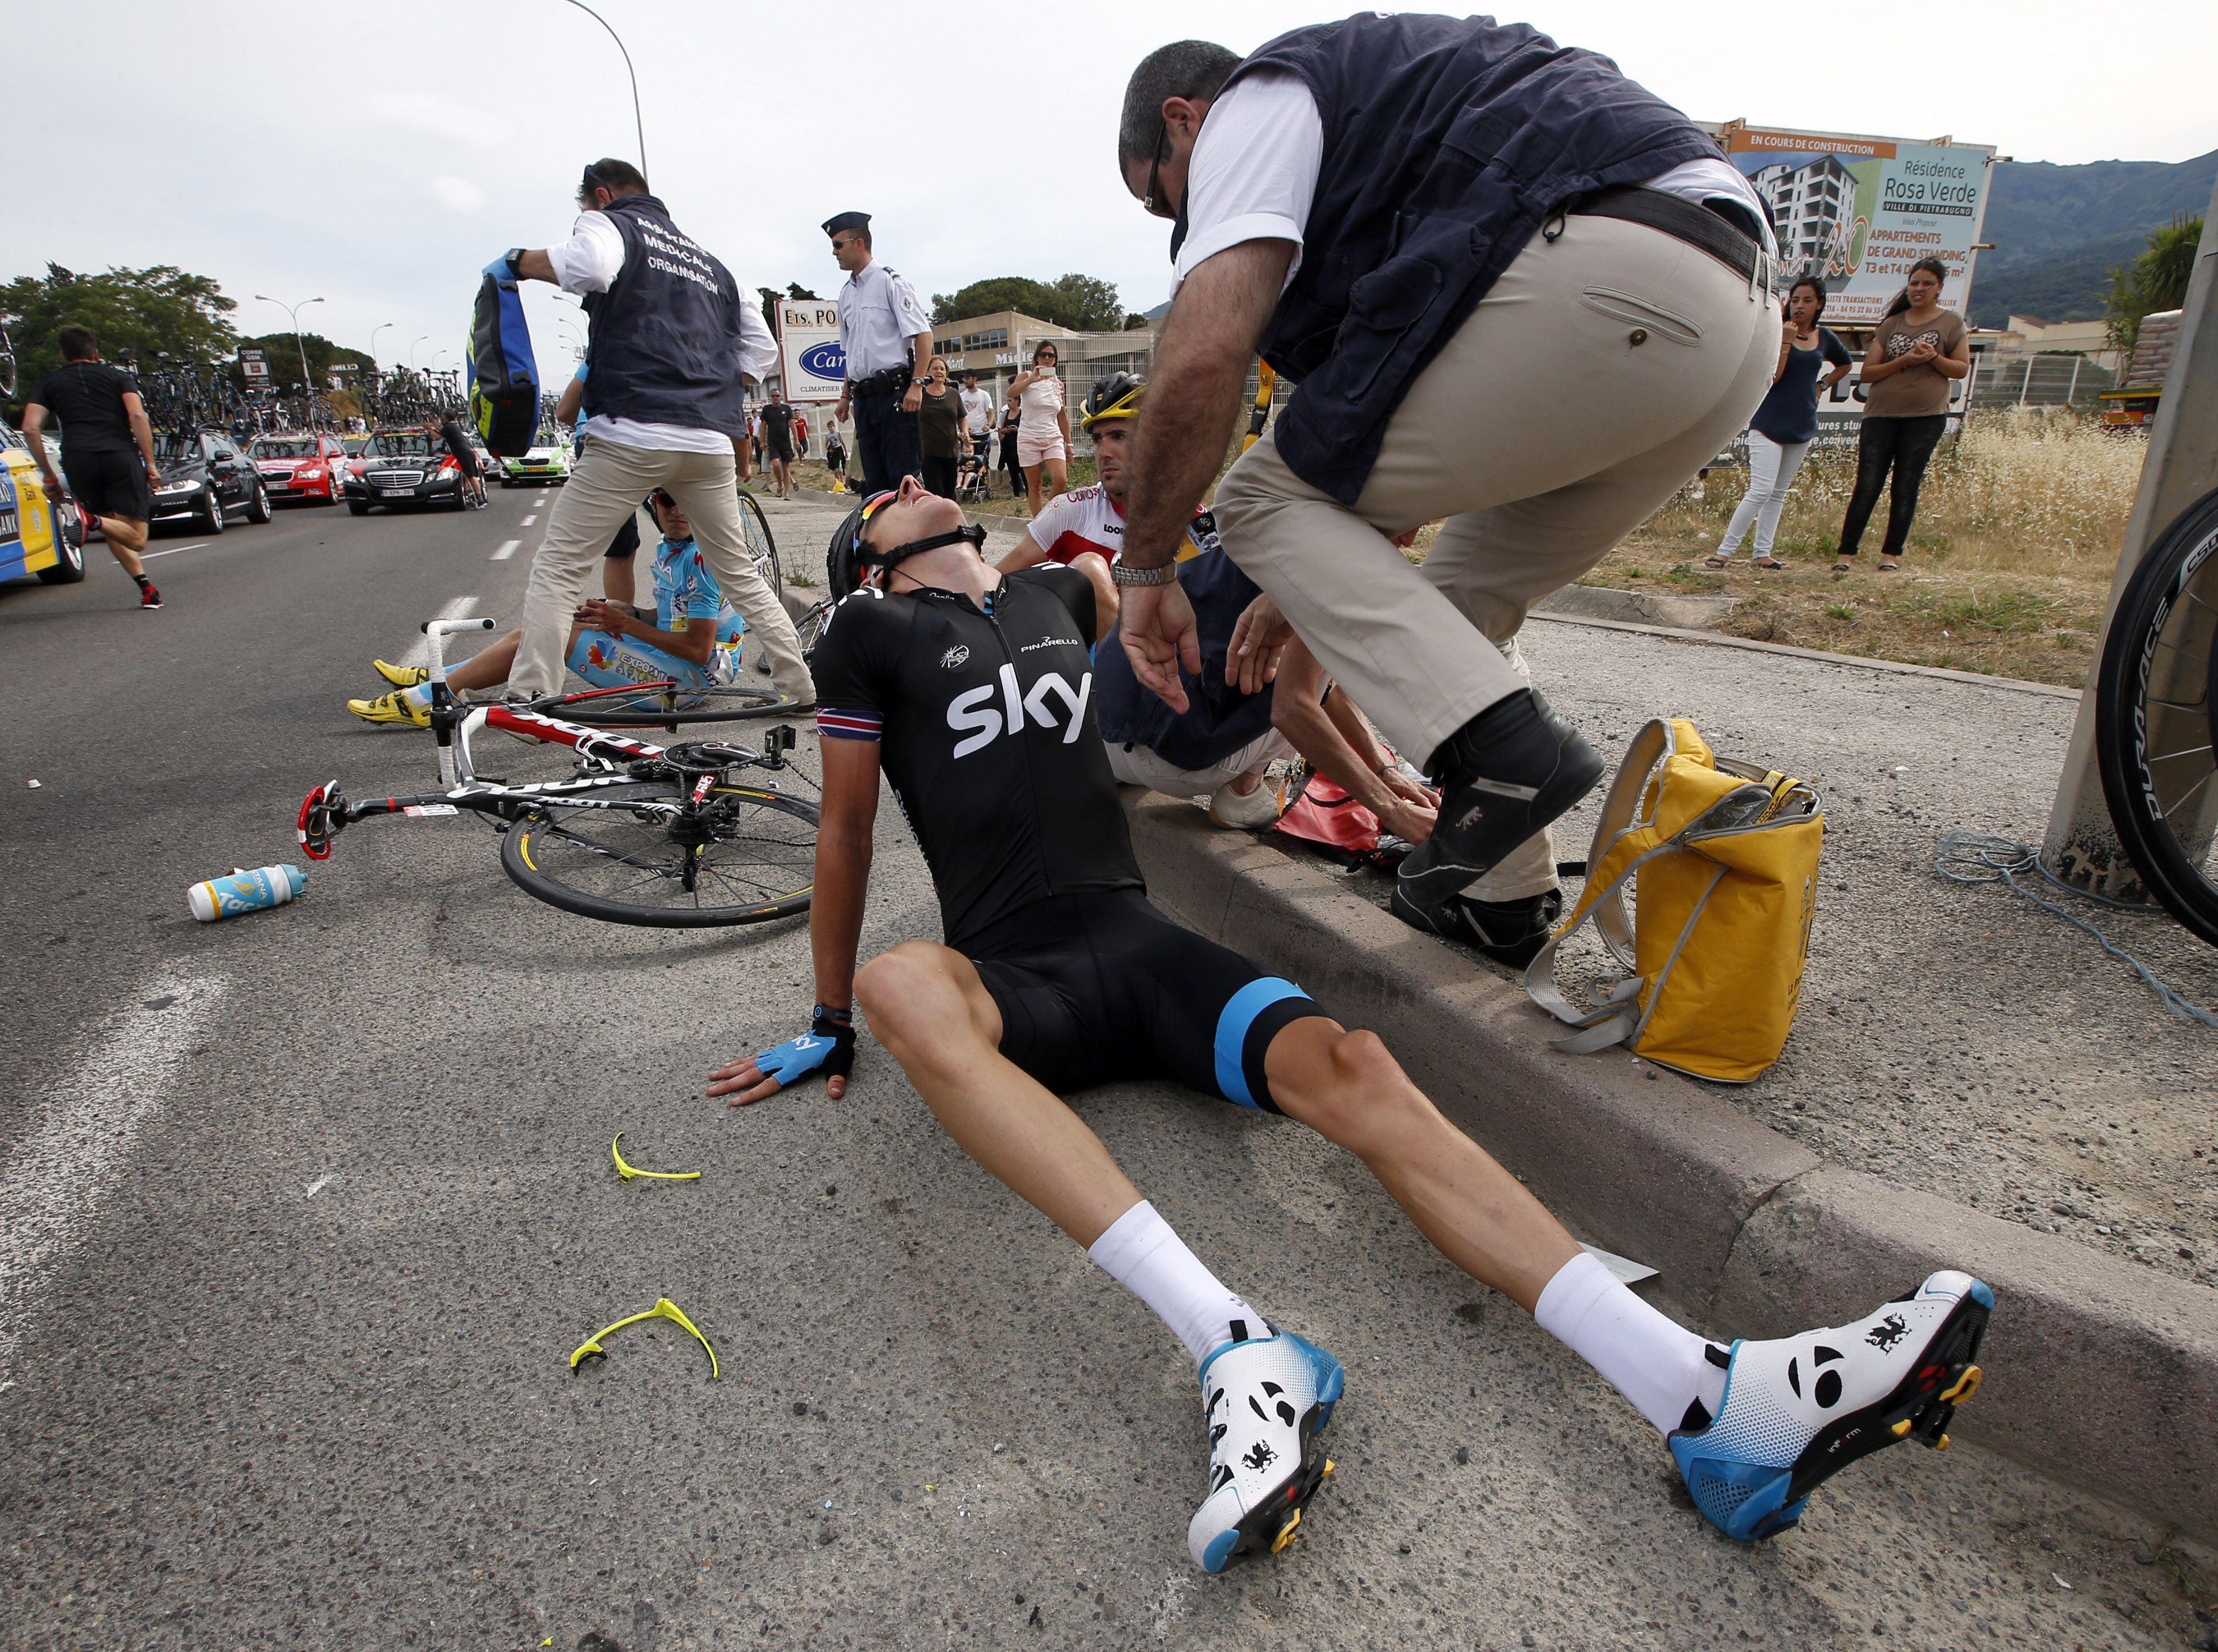 Www Ets Thomas Fr the-first-stage-of-the-tour-de-france-ended-with-a-stuck-bus